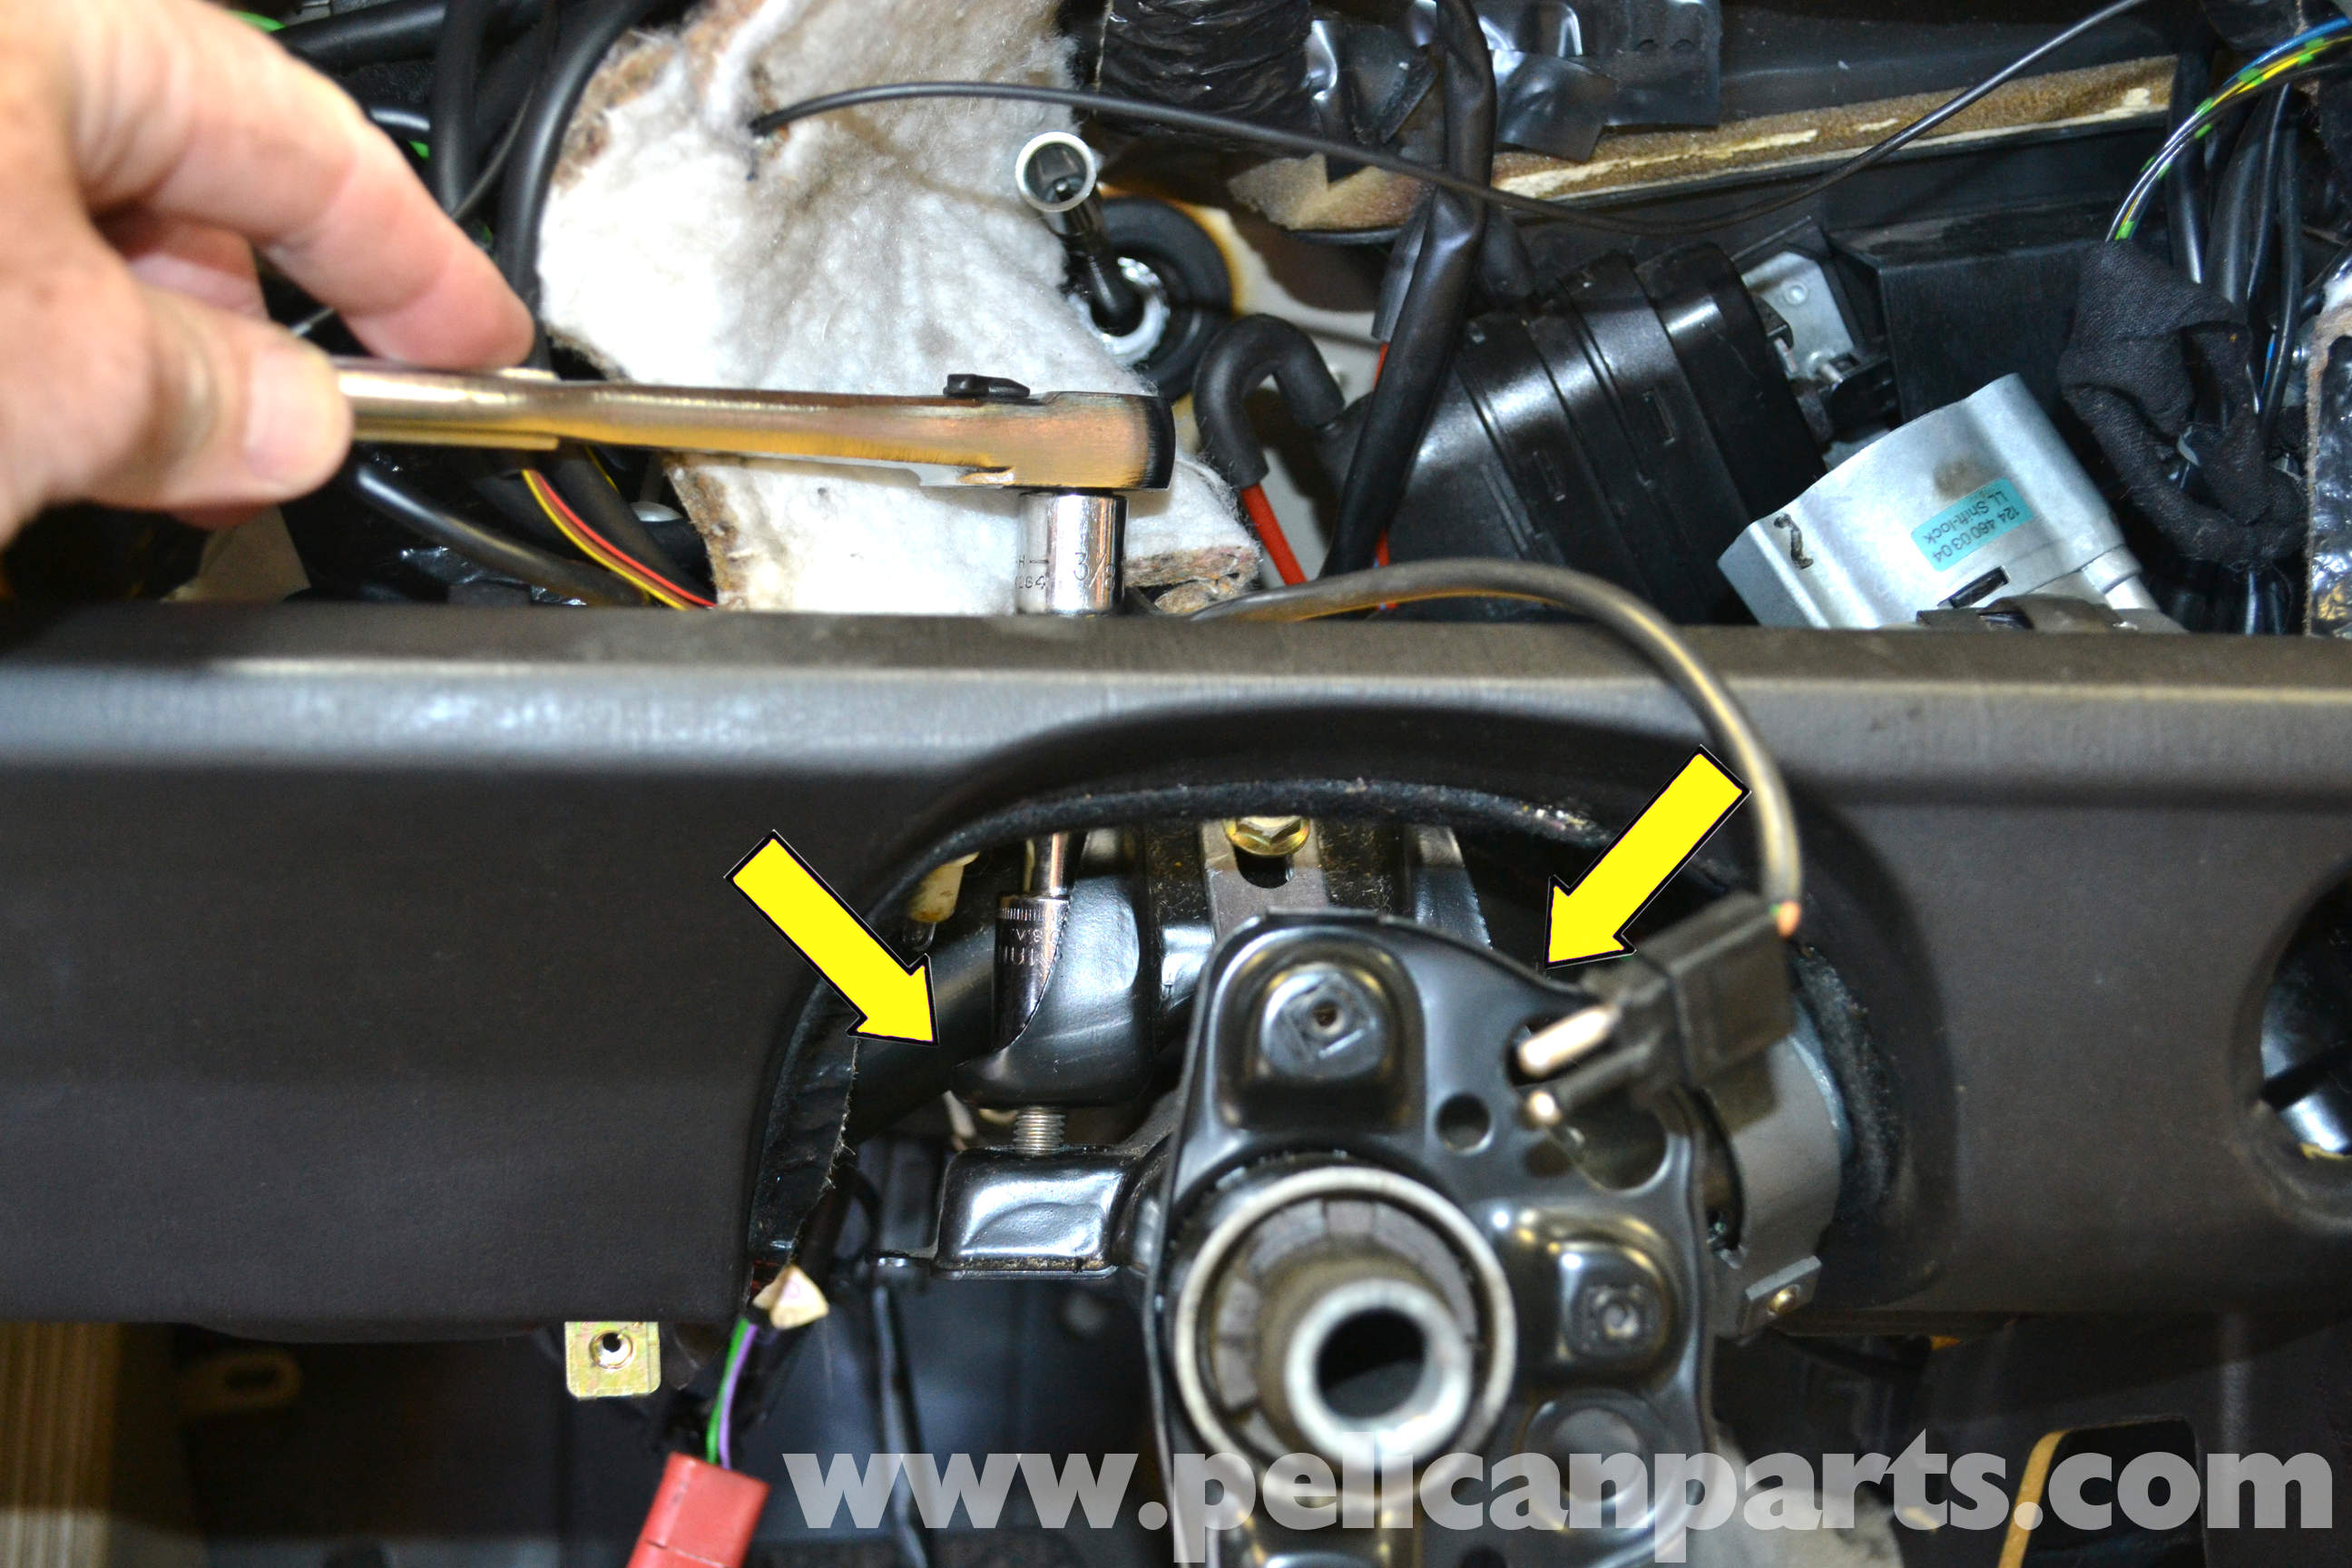 48 BODY Replacing Your Ignition Switch and Lock on 1997 saab ignition switch